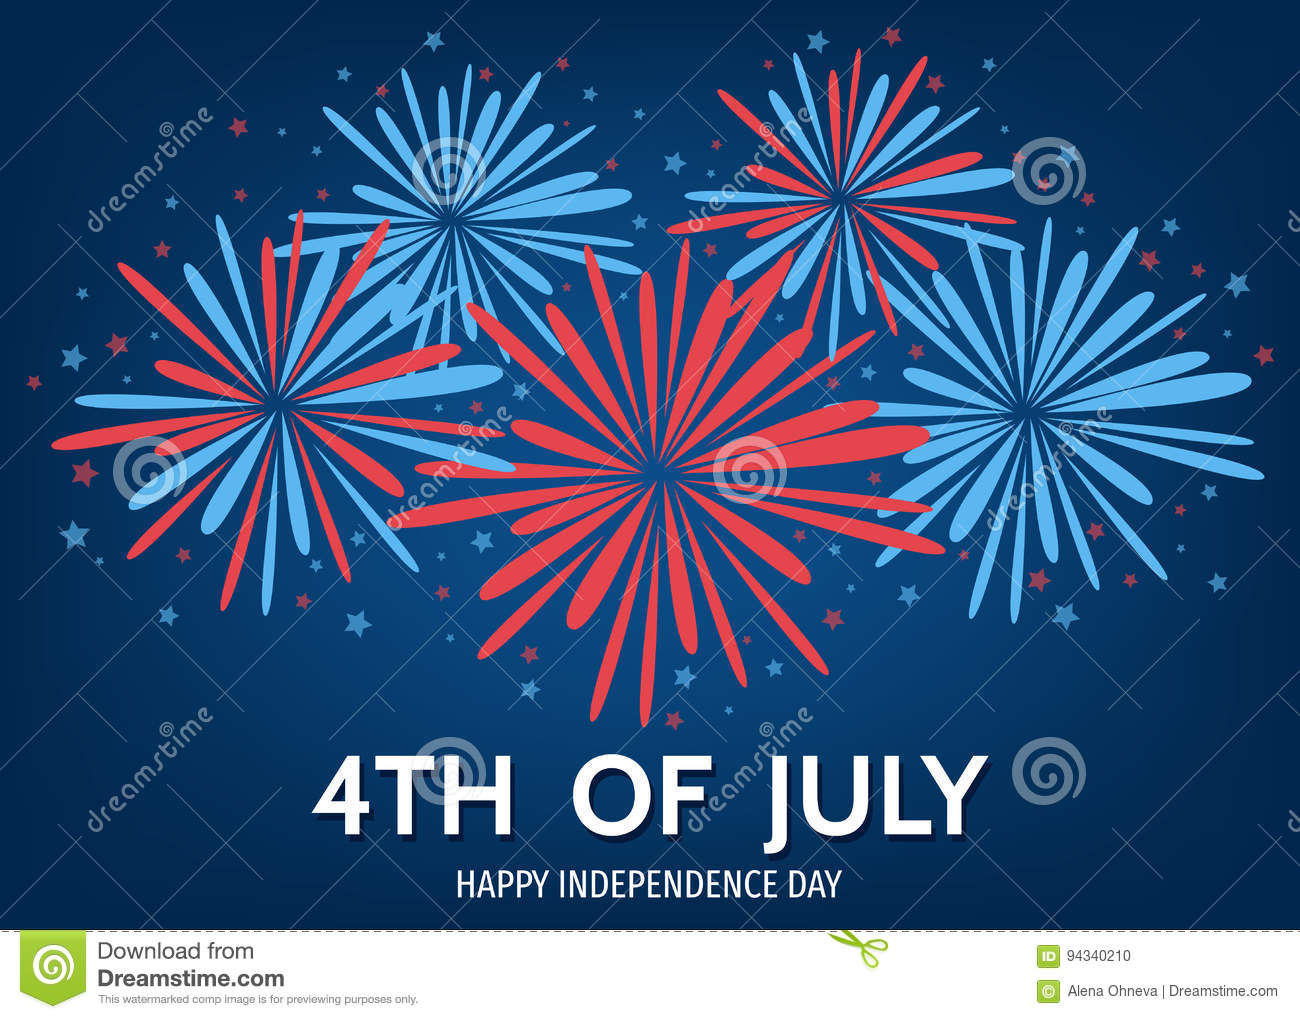 Usa happy independence day background with fireworks for Th background color